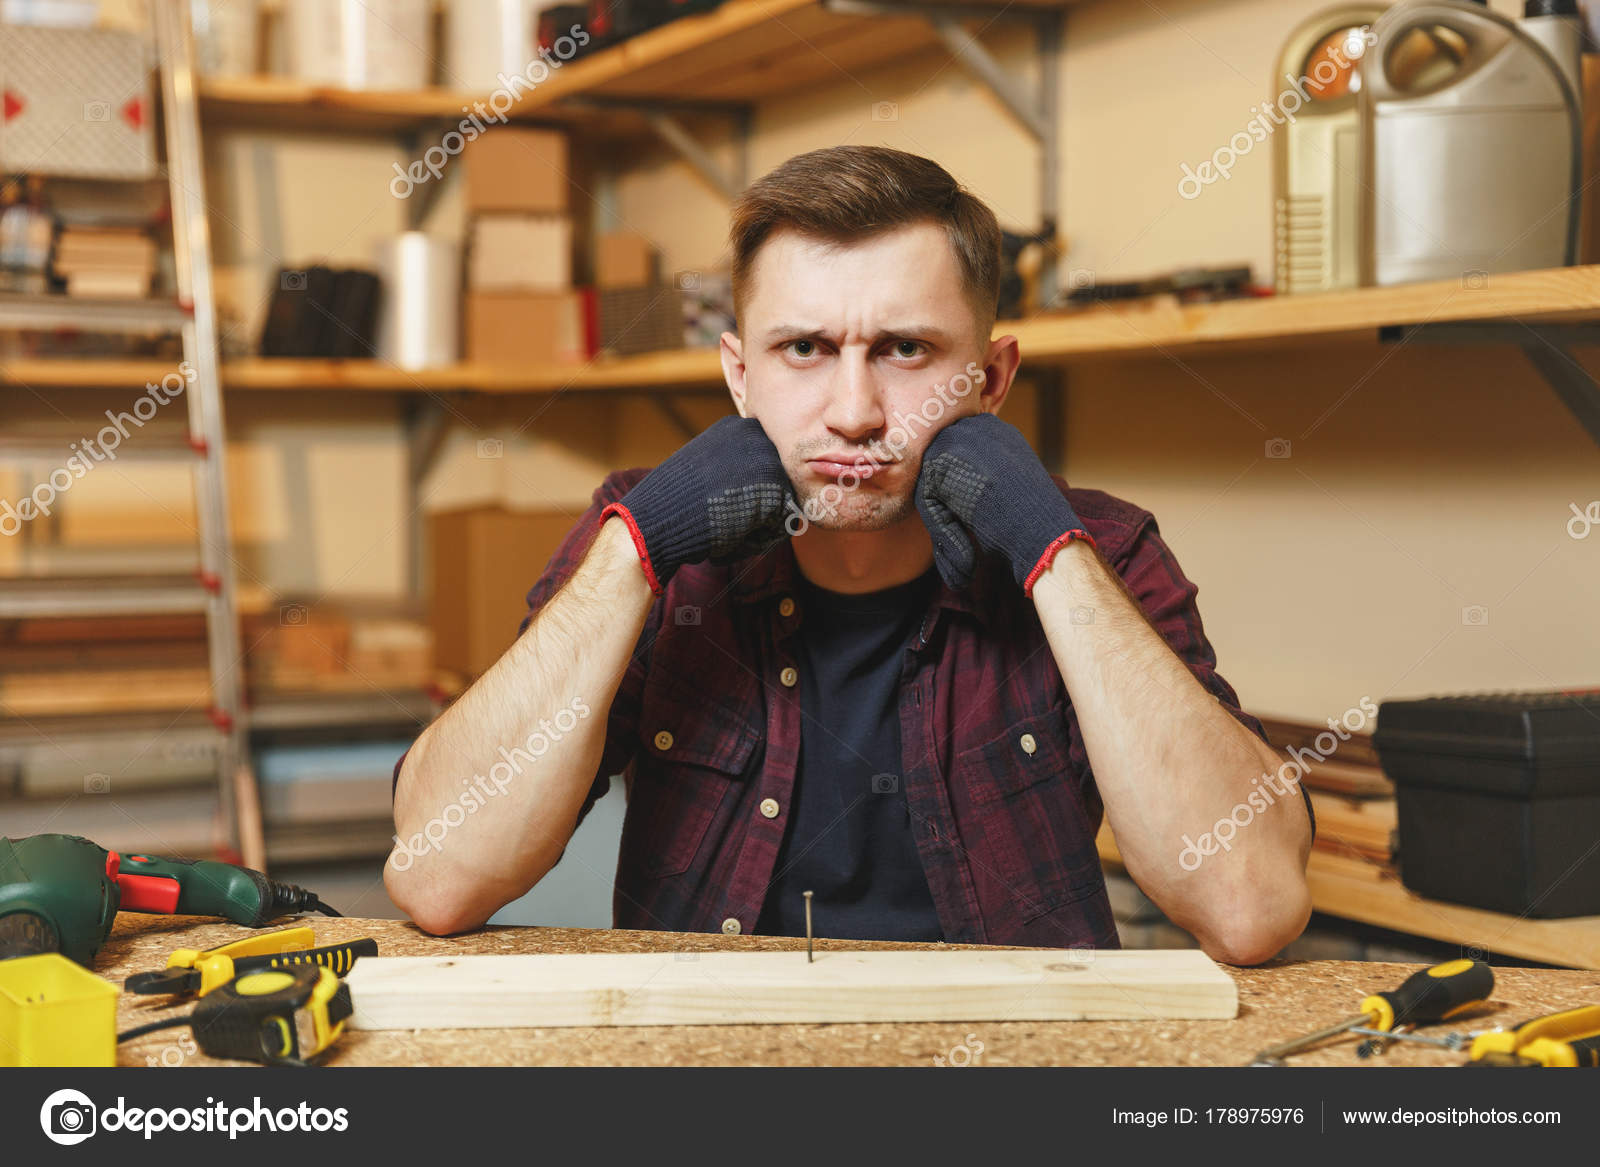 4252a261 Handsome sad upset caucasian young man in plaid shirt, black T-shirt,  gloves working in carpentry ...